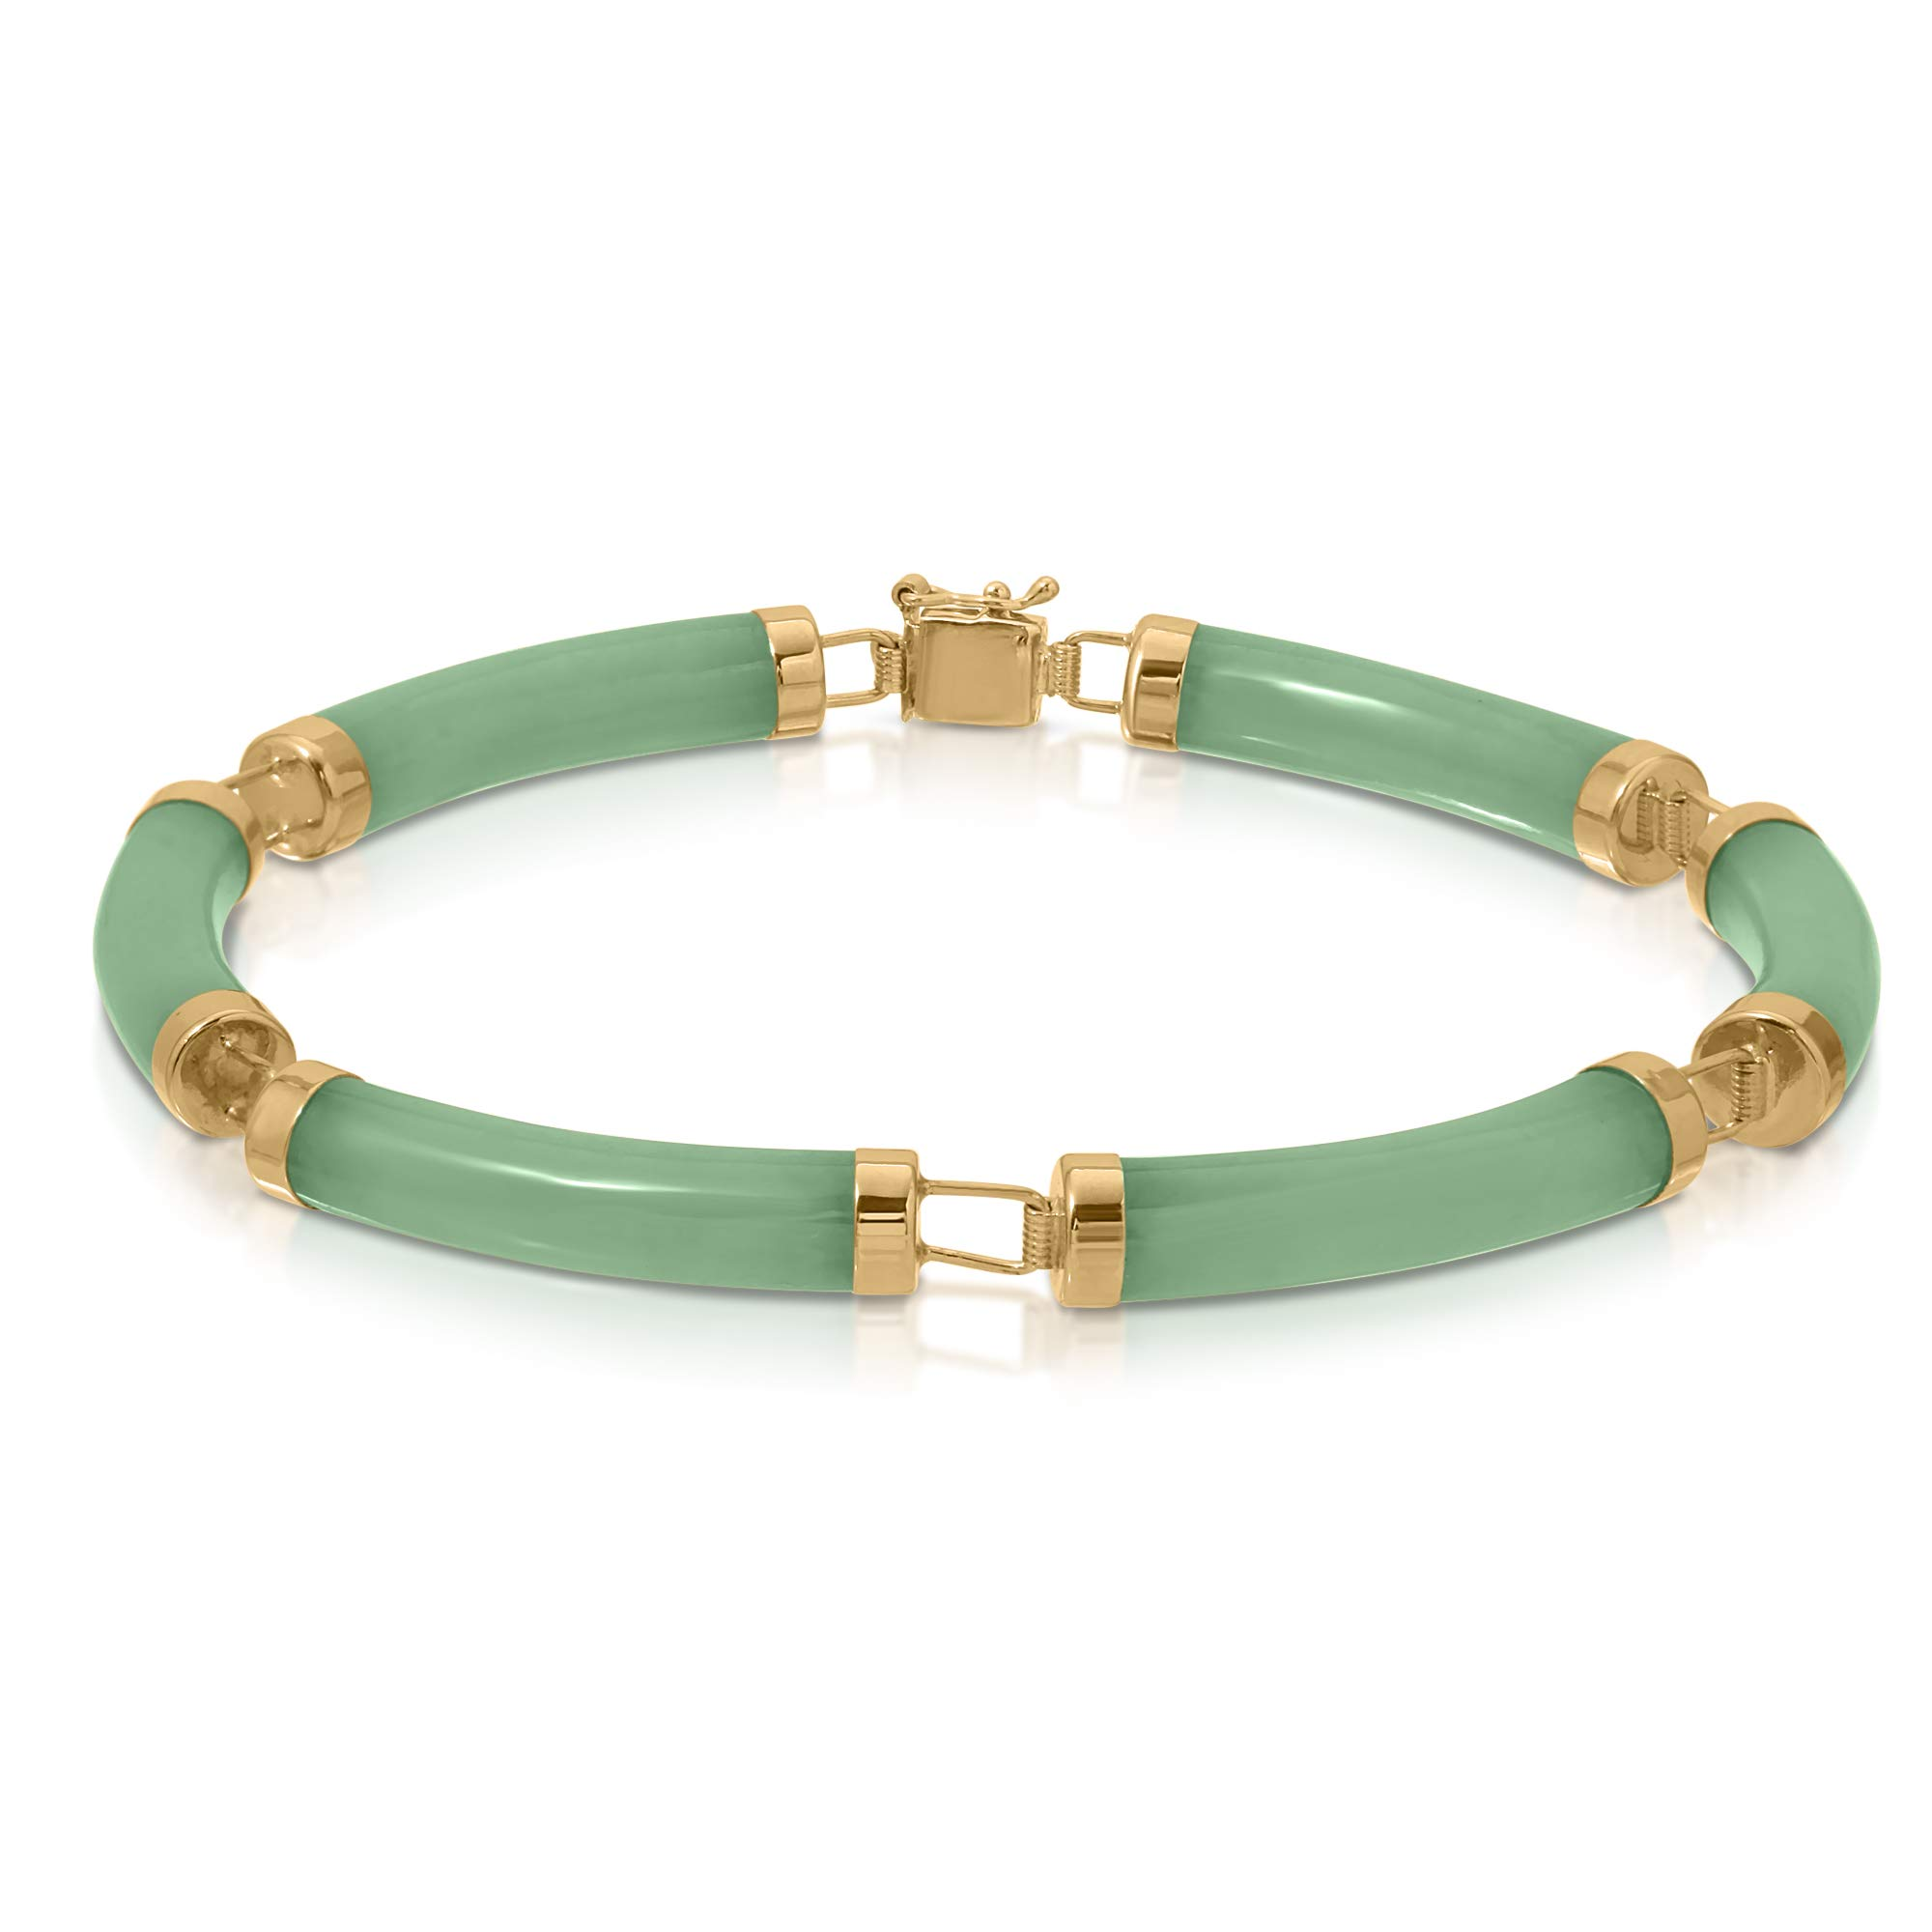 Regalia by Ulti Ramos 14K Yellow Gold Natural Jade Green Curved Link Bracelet